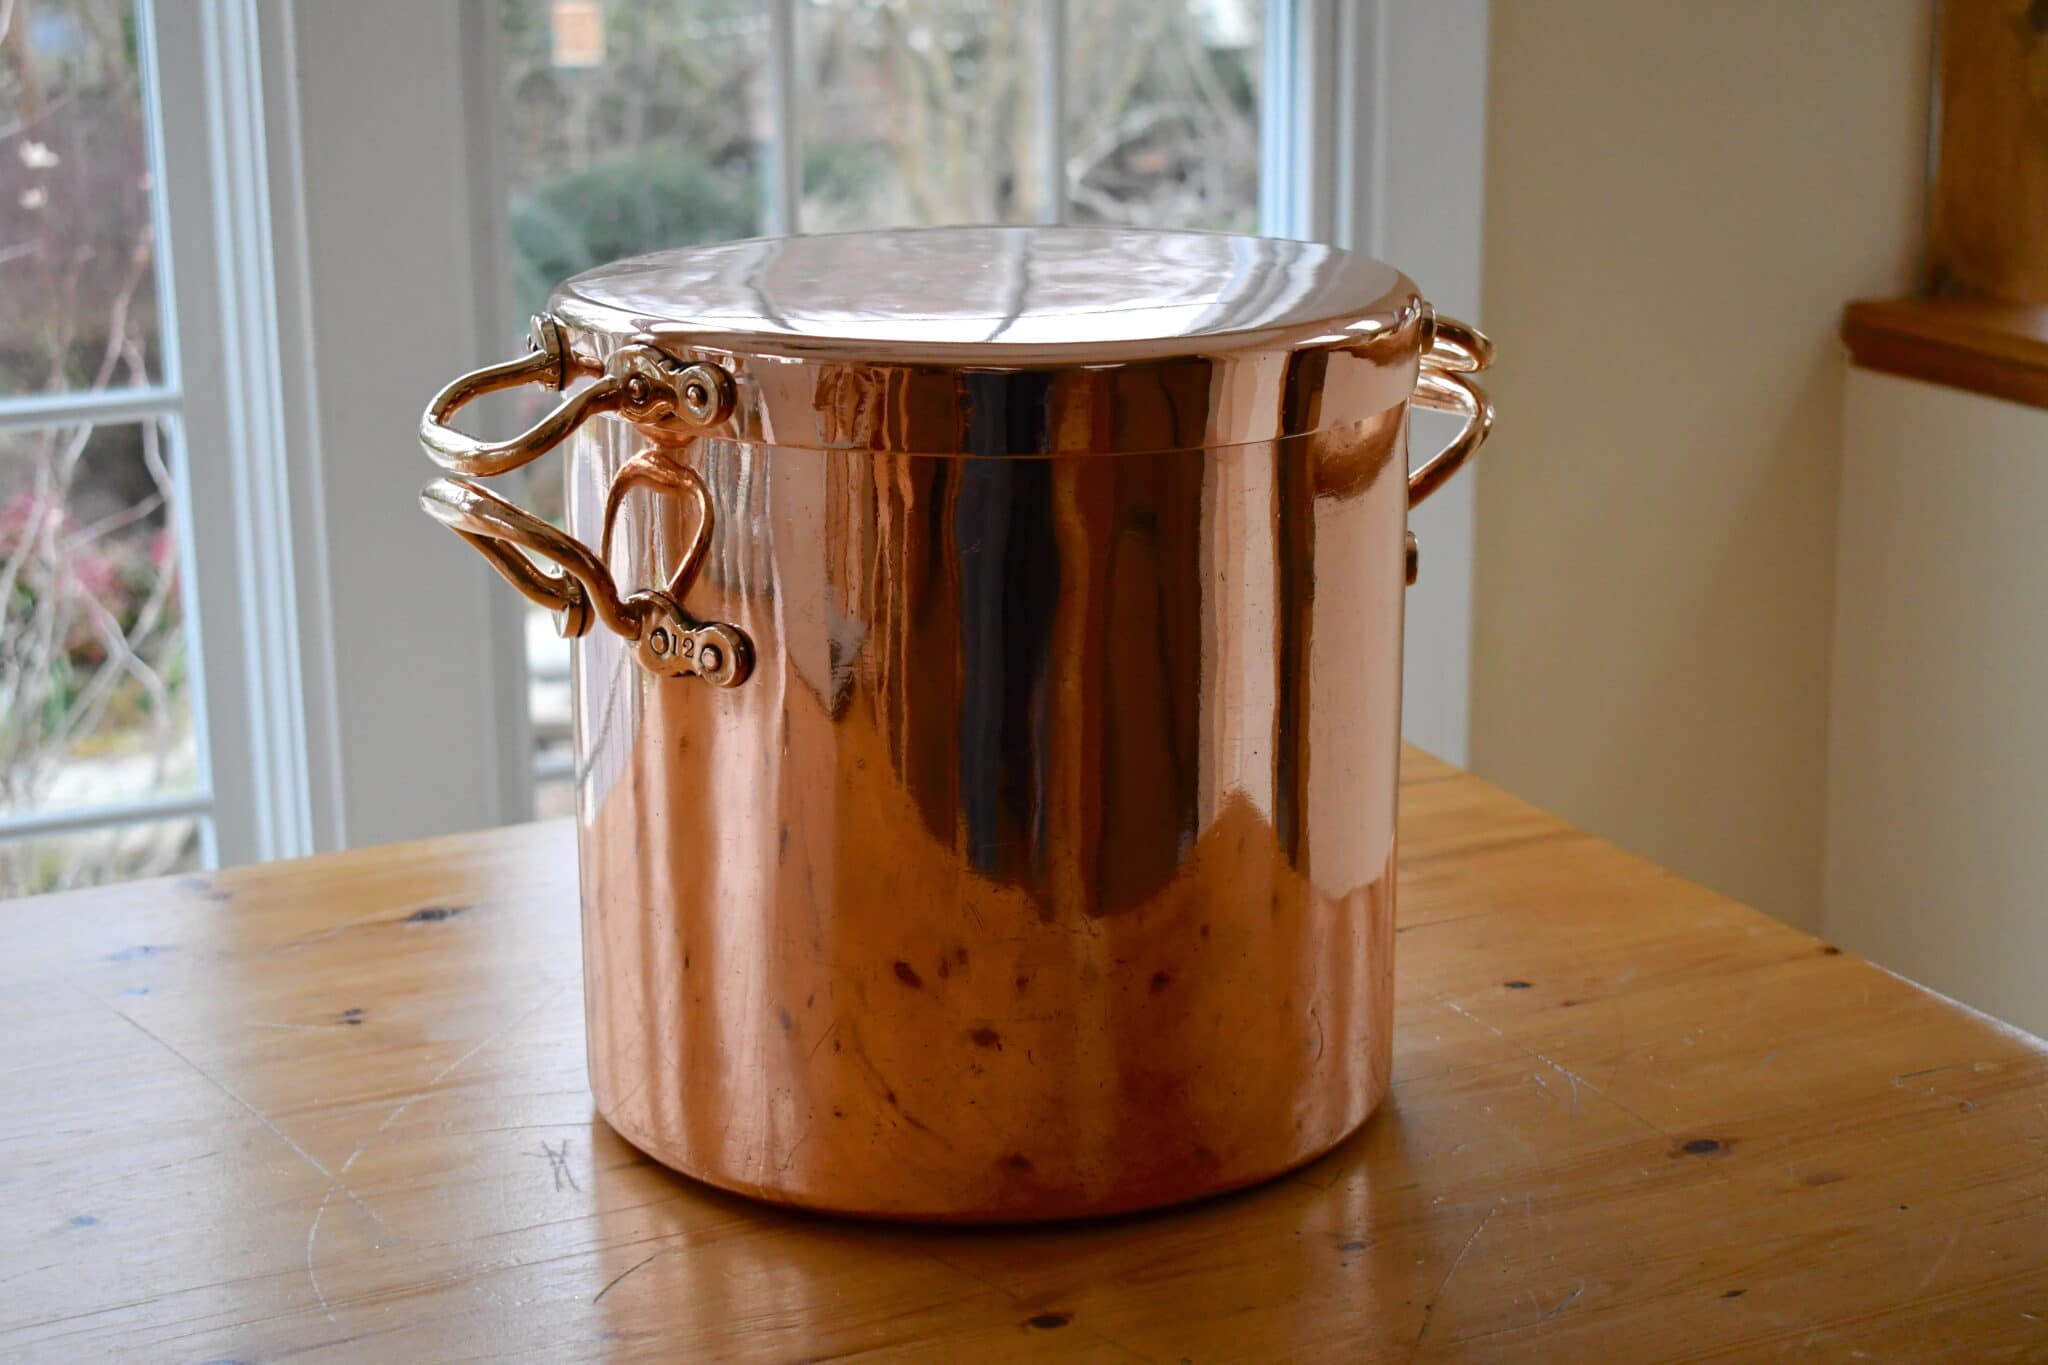 How it was made: English stockpot